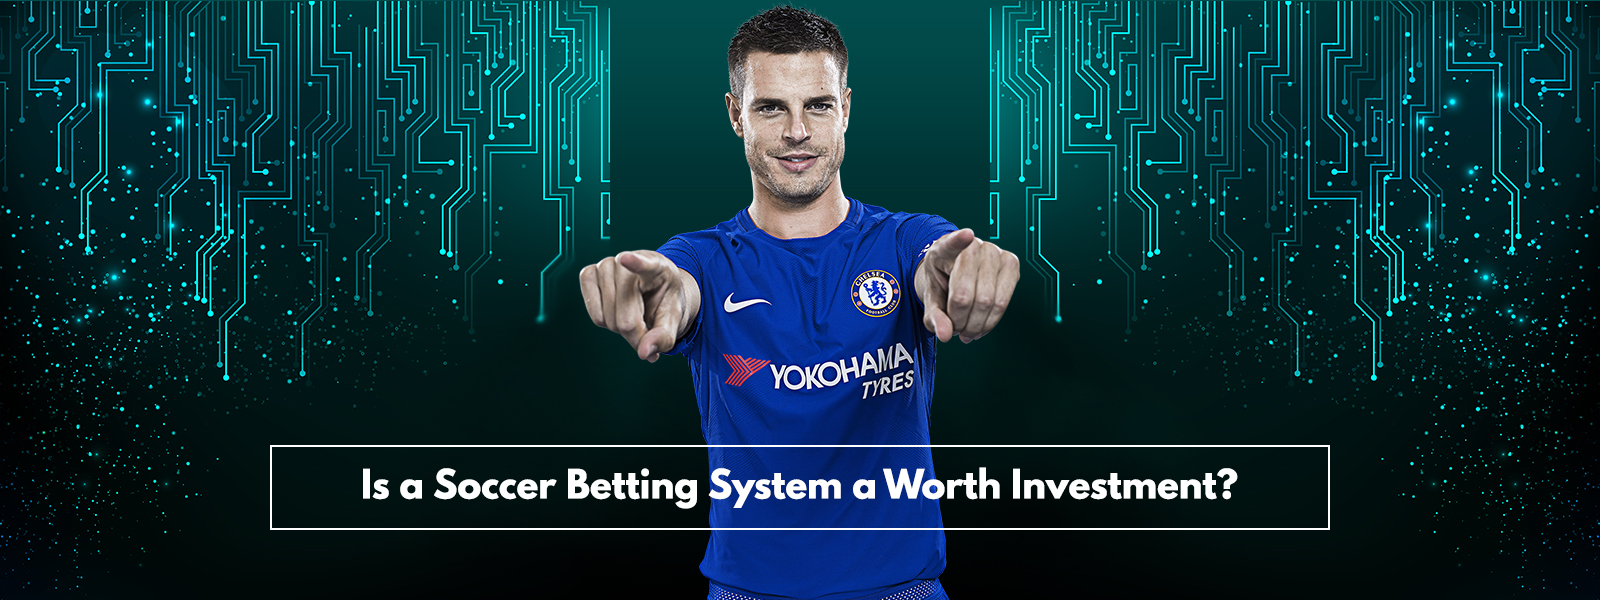 Is a Soccer Betting System a Worth Investment?